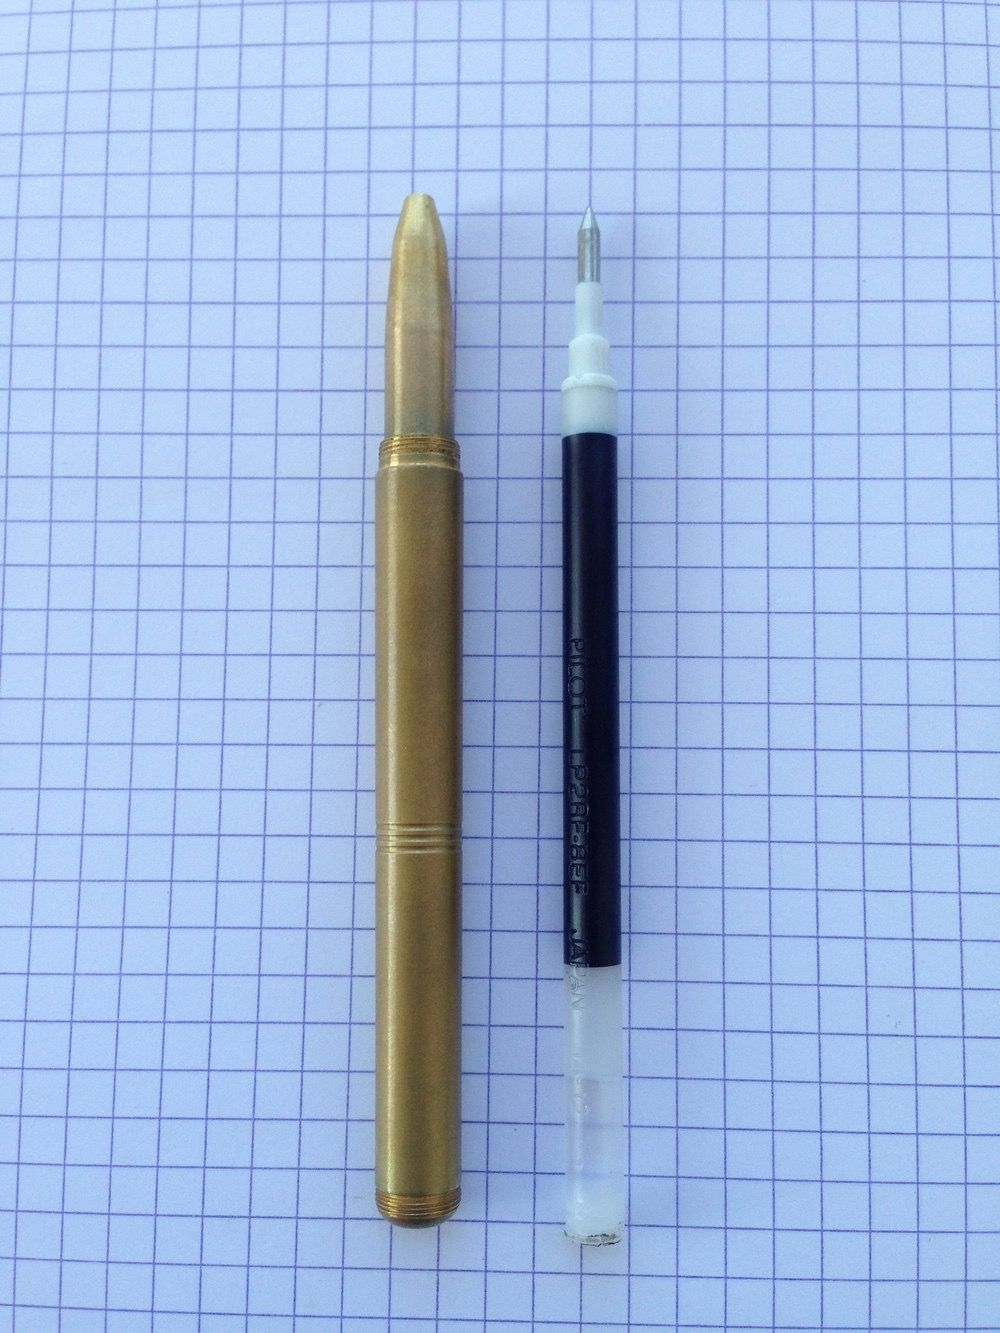 Comparison of the body and Pilot G2/Juice refill. You can also see the threads where the cap posts